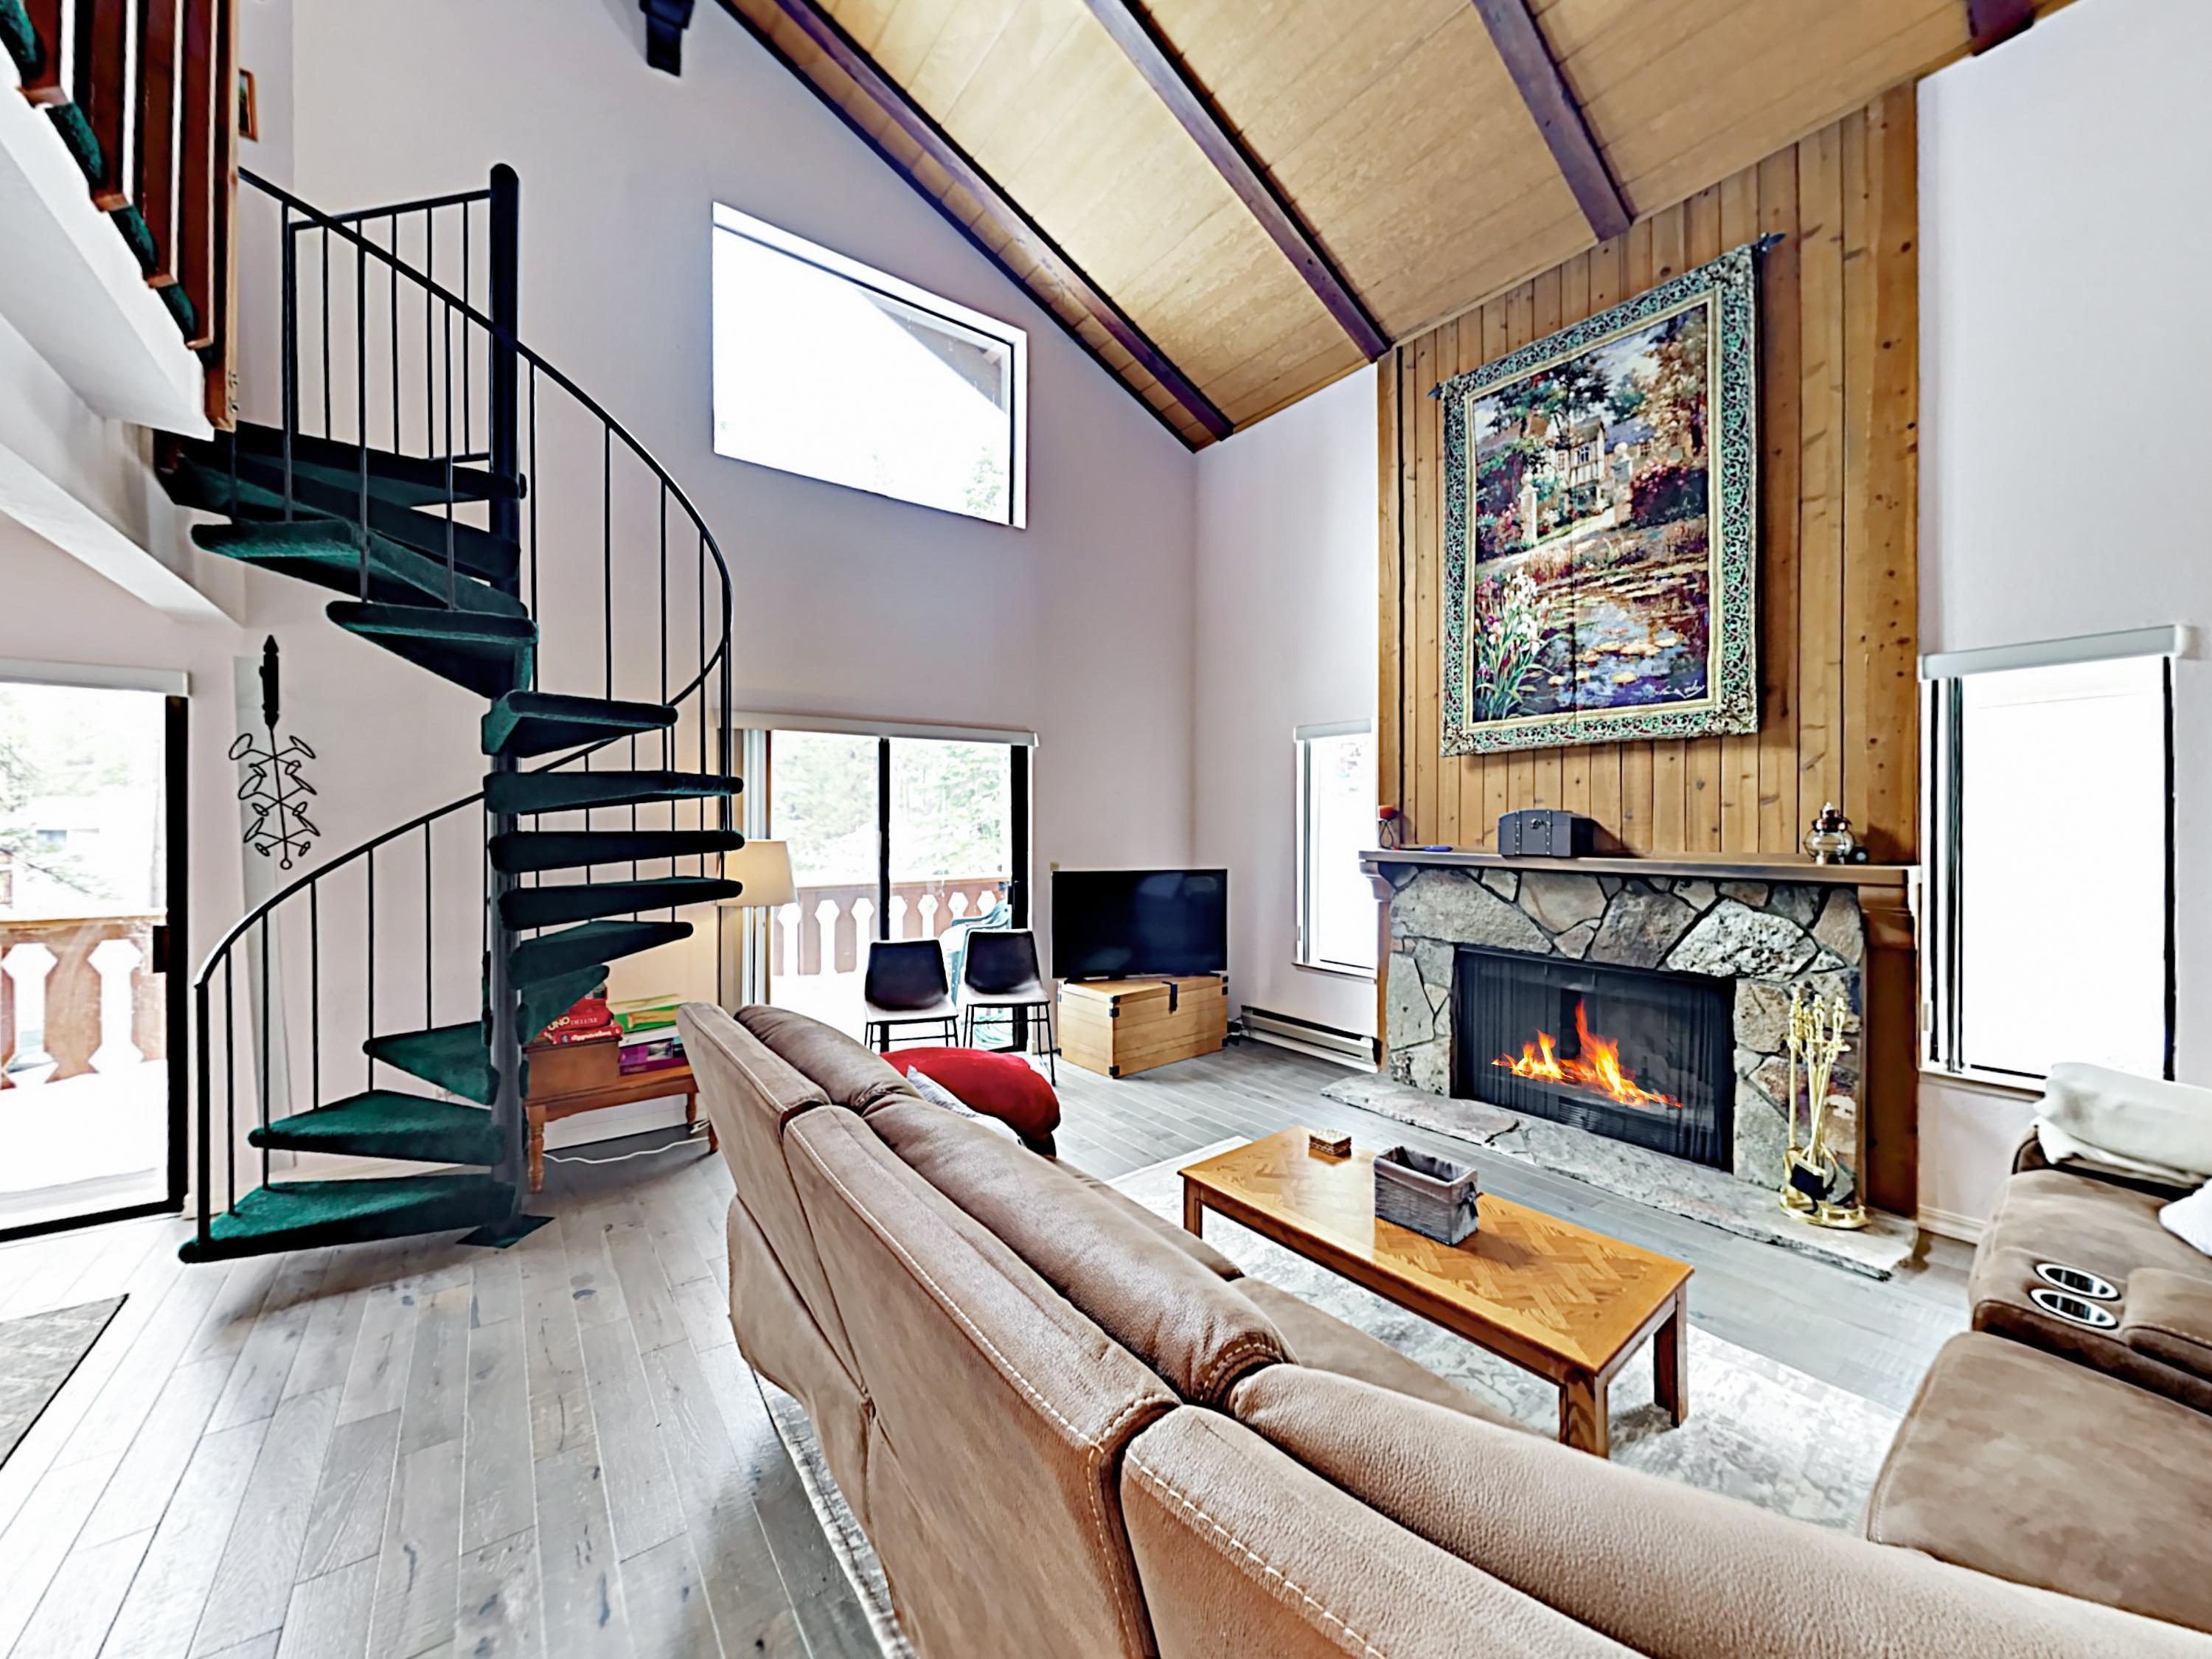 Property Image 1 - Contemporary Ski Home near Heavenly Resort